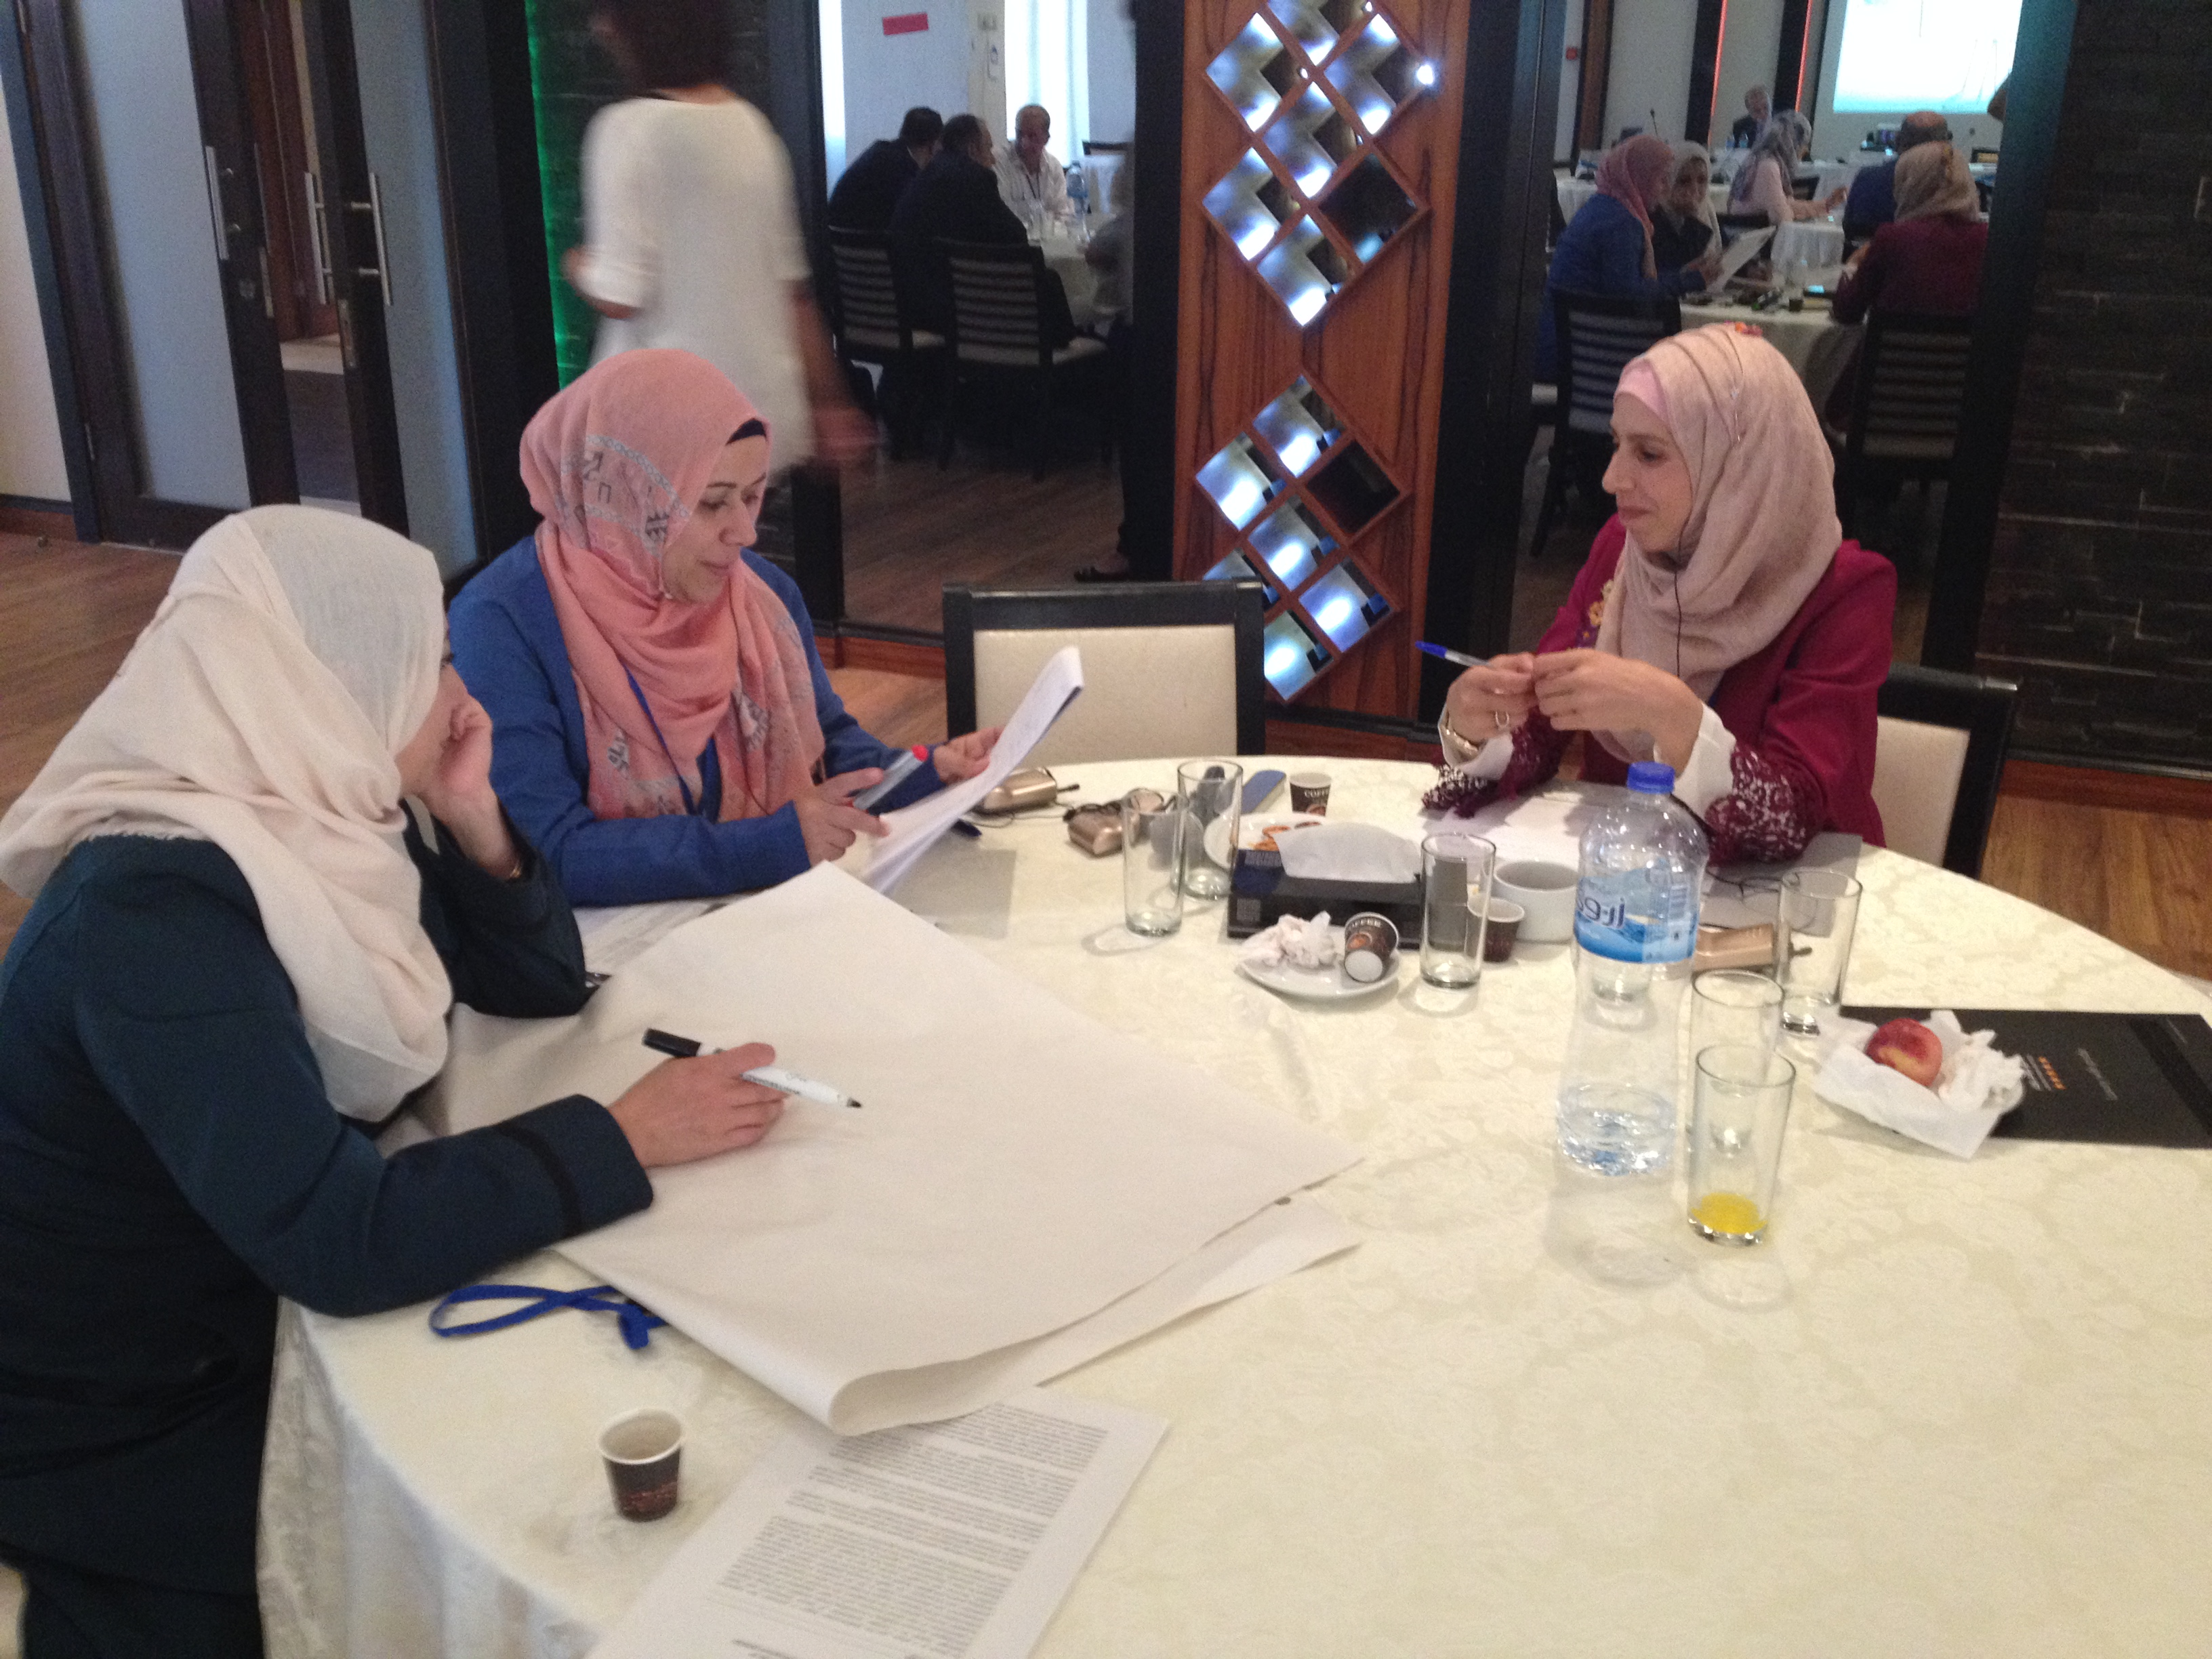 17-18 September 2017, Ramallah, Palestine- SWIM-H2020 SM Training on Education for Sustainable Development (ESD)